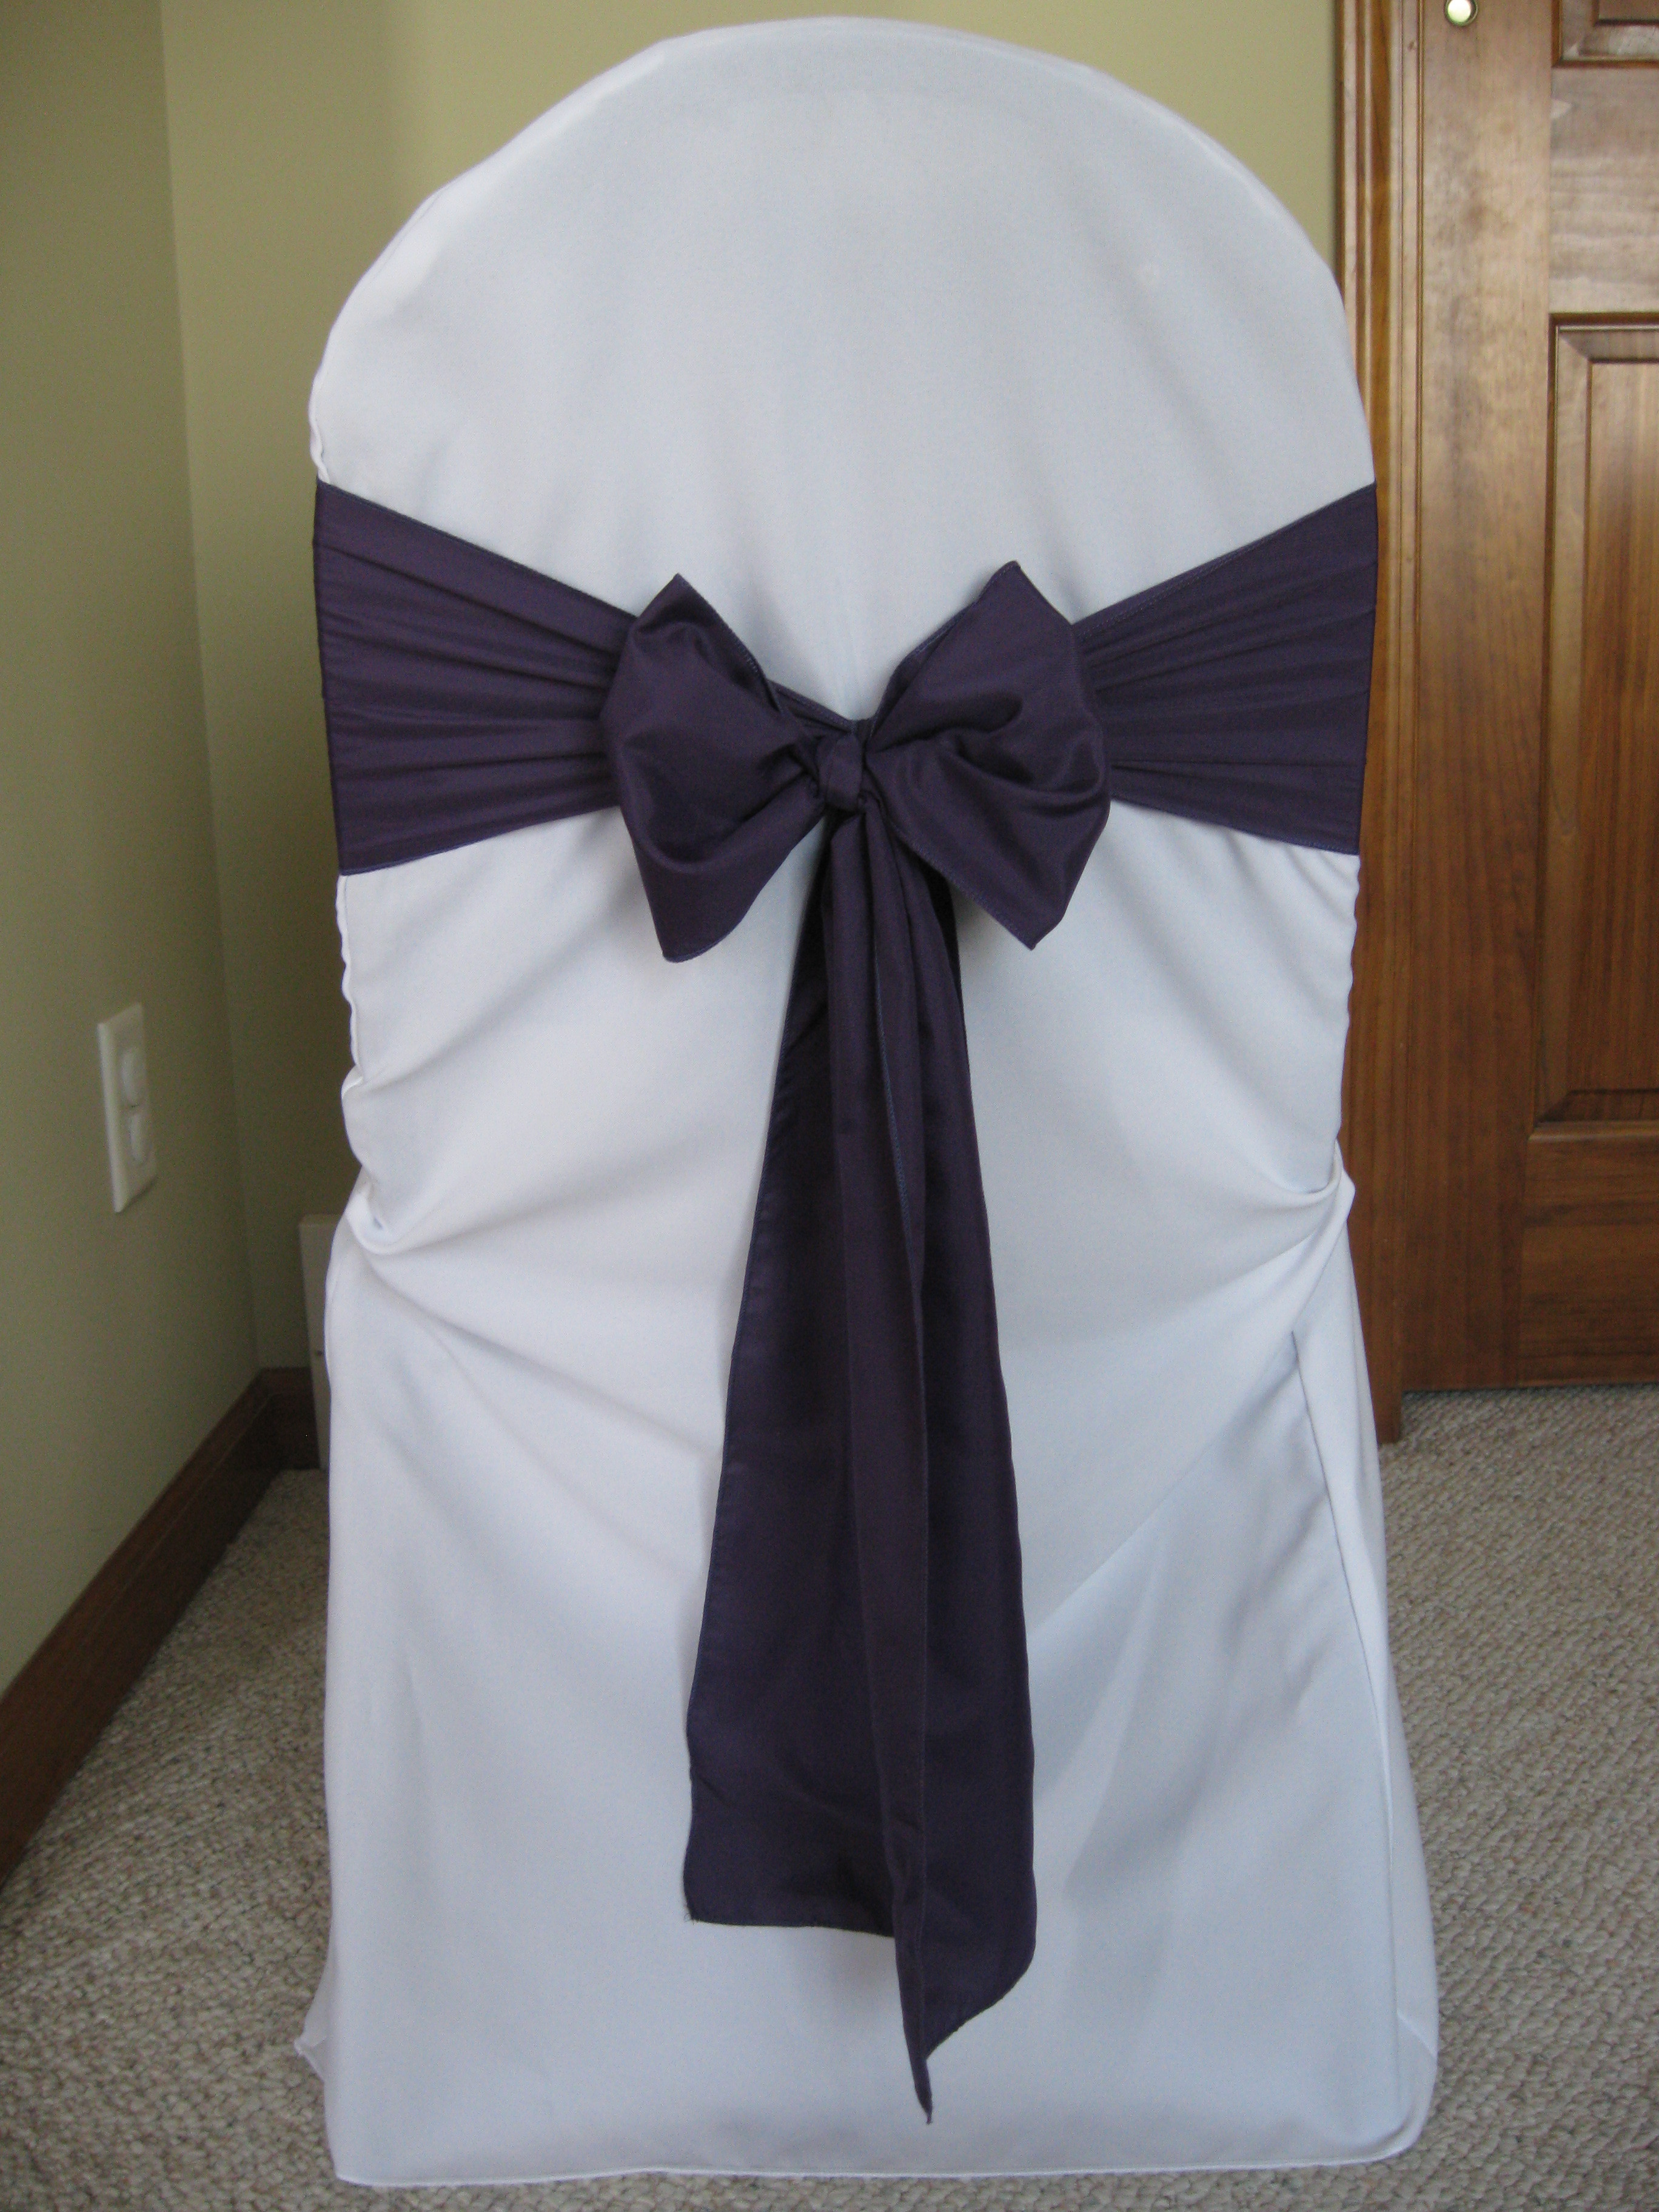 Ceremony, Reception, Flowers & Decor, purple, Chair, Sash, Linens, Dark, Eggplant, Lapis